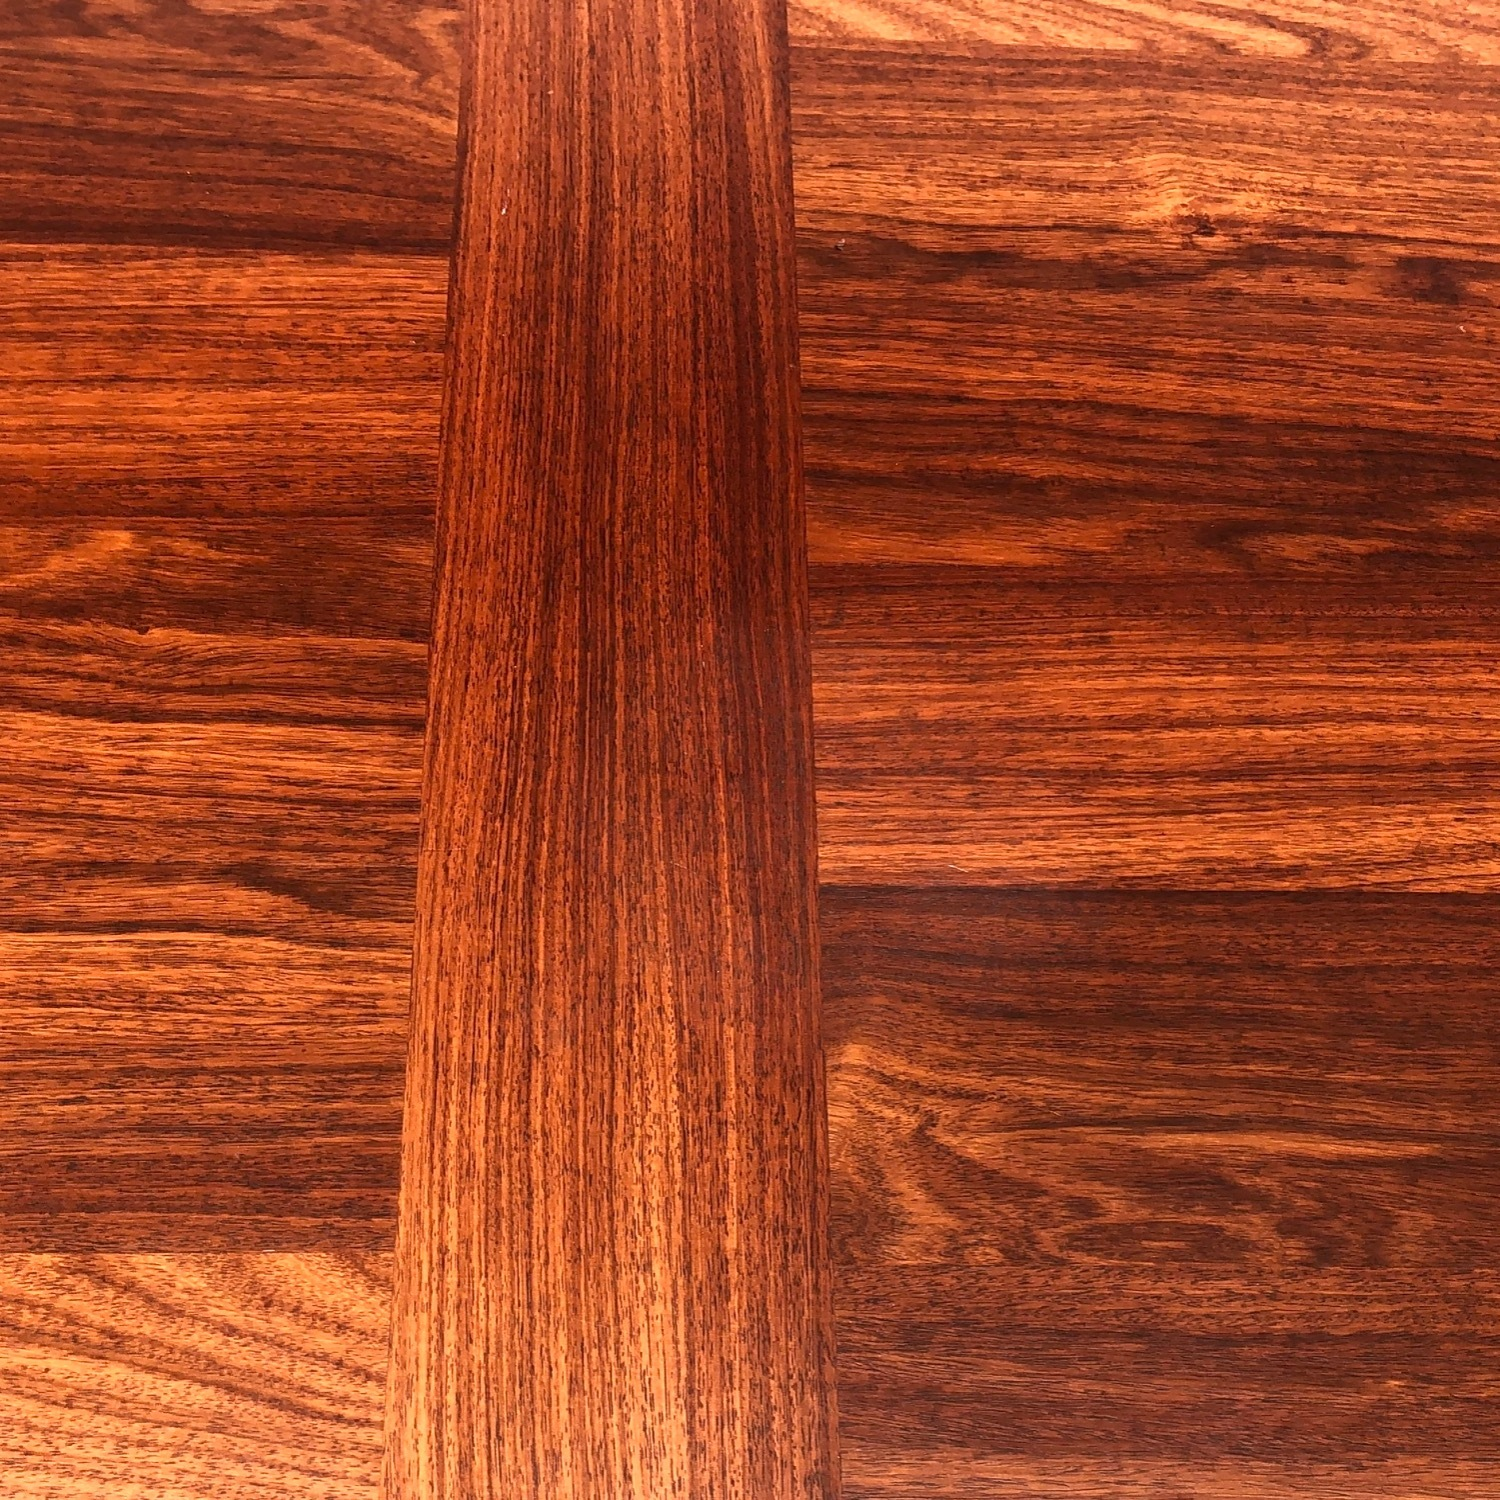 Mid-Century Rosewood Dining Table With Leaves - image-10